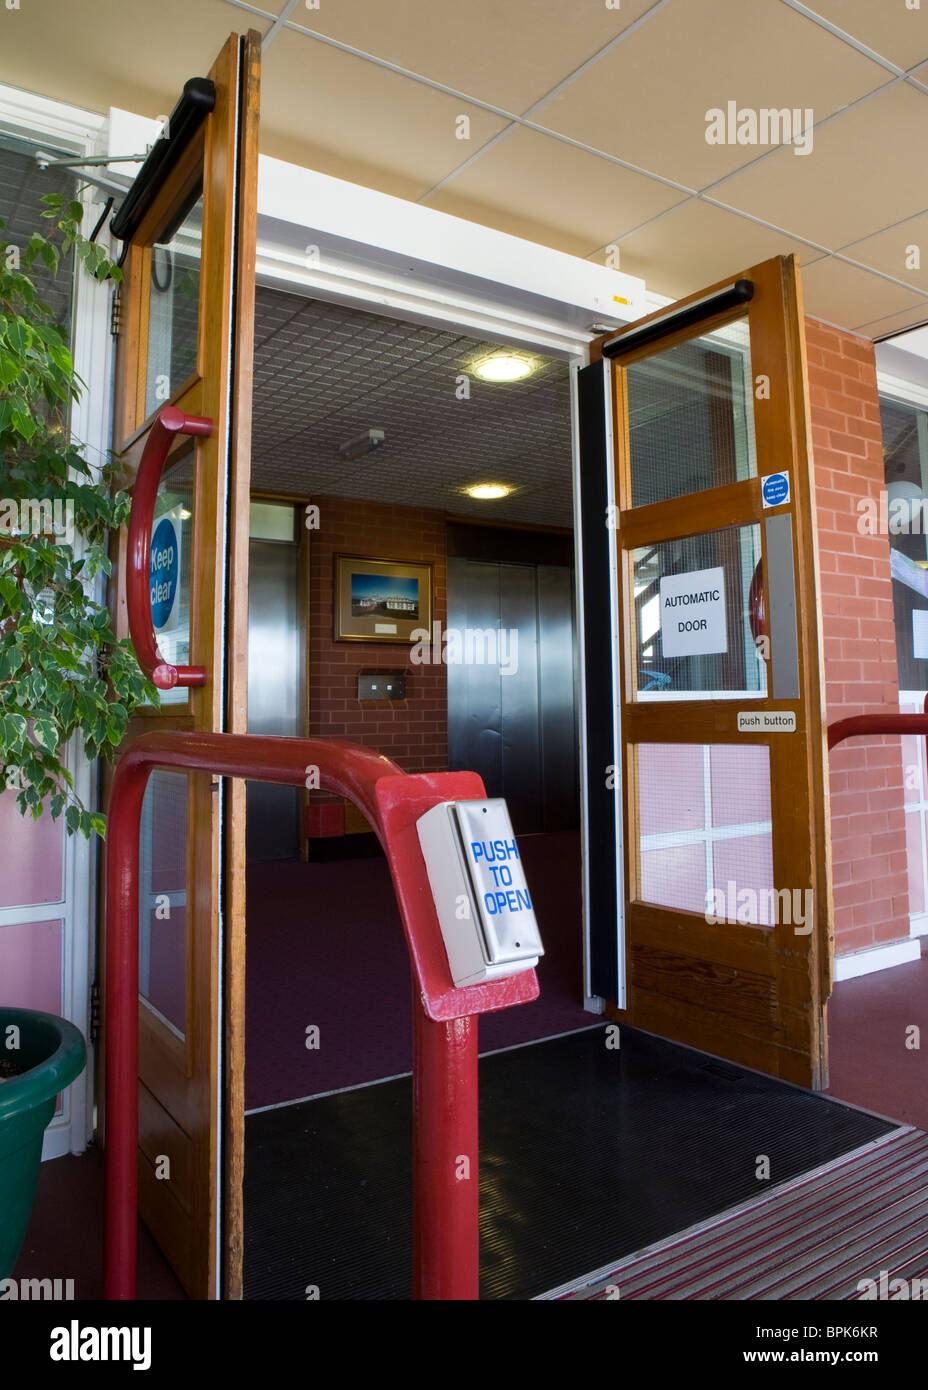 Disability access _Entrance Doors at Vitalise Respite Care Centre, Southport, Merseyside, UK - Stock Image